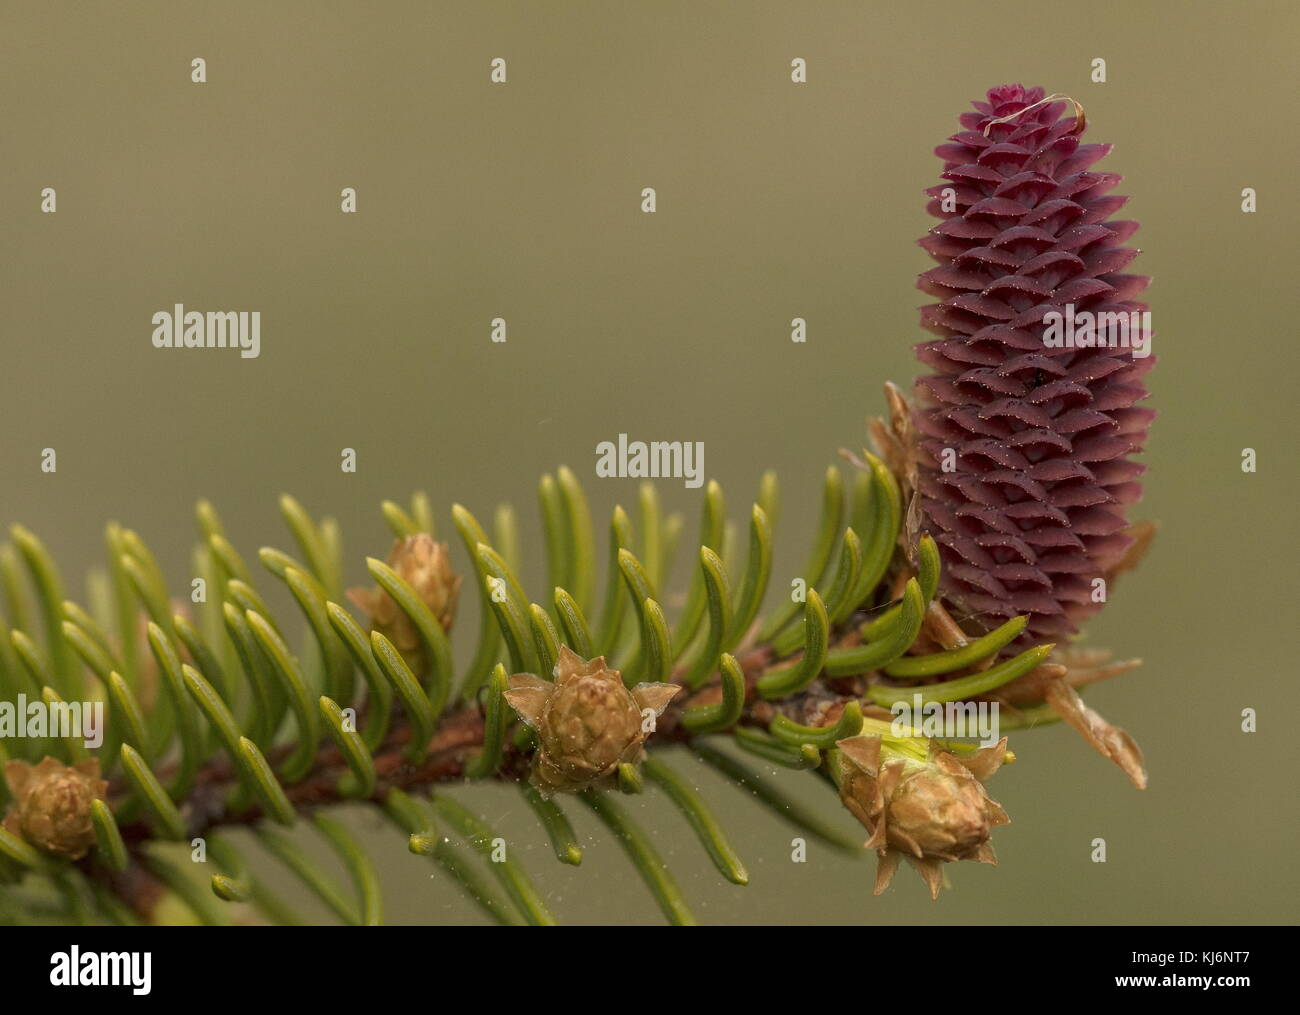 Young Female cones of Norway Spruce, Picea abies. - Stock Image